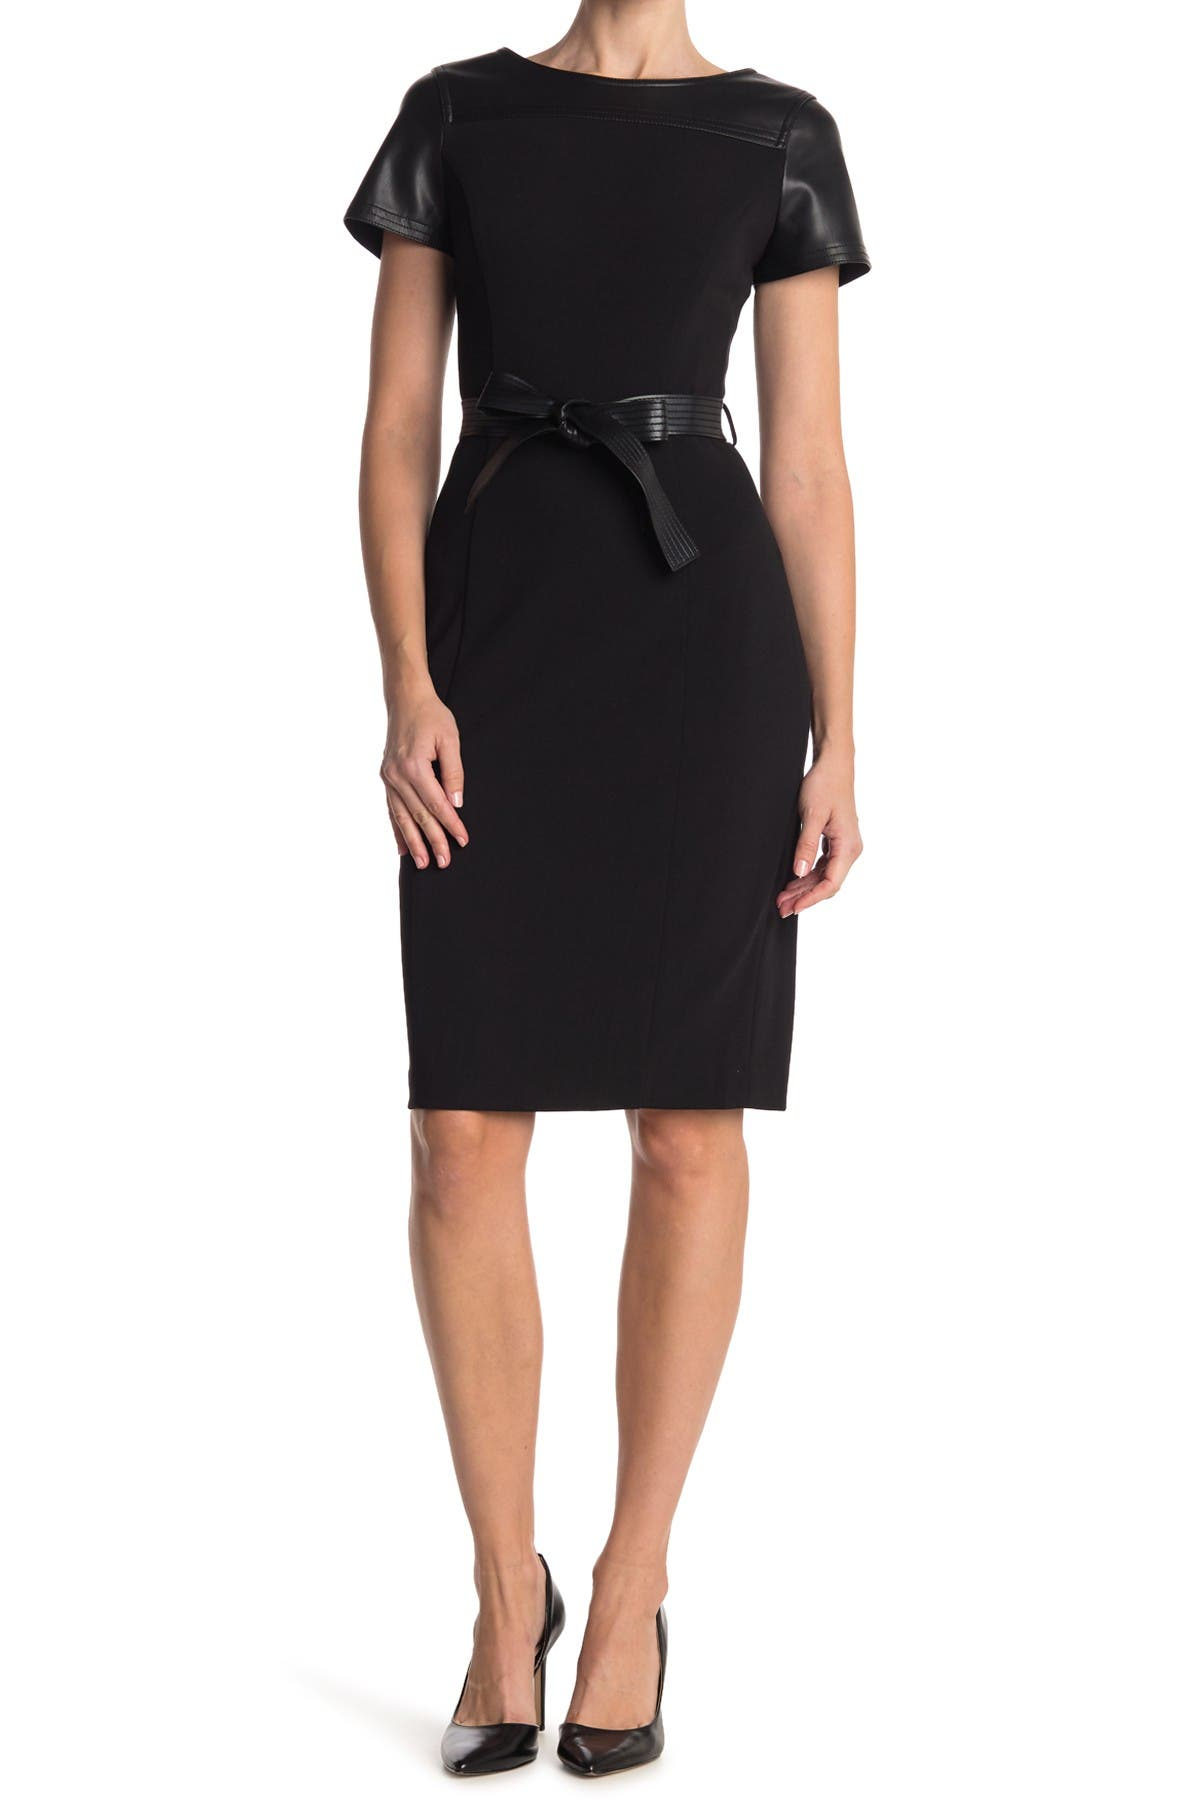 Image of Calvin Klein Belted Faux Leather Accent Sheath Dress